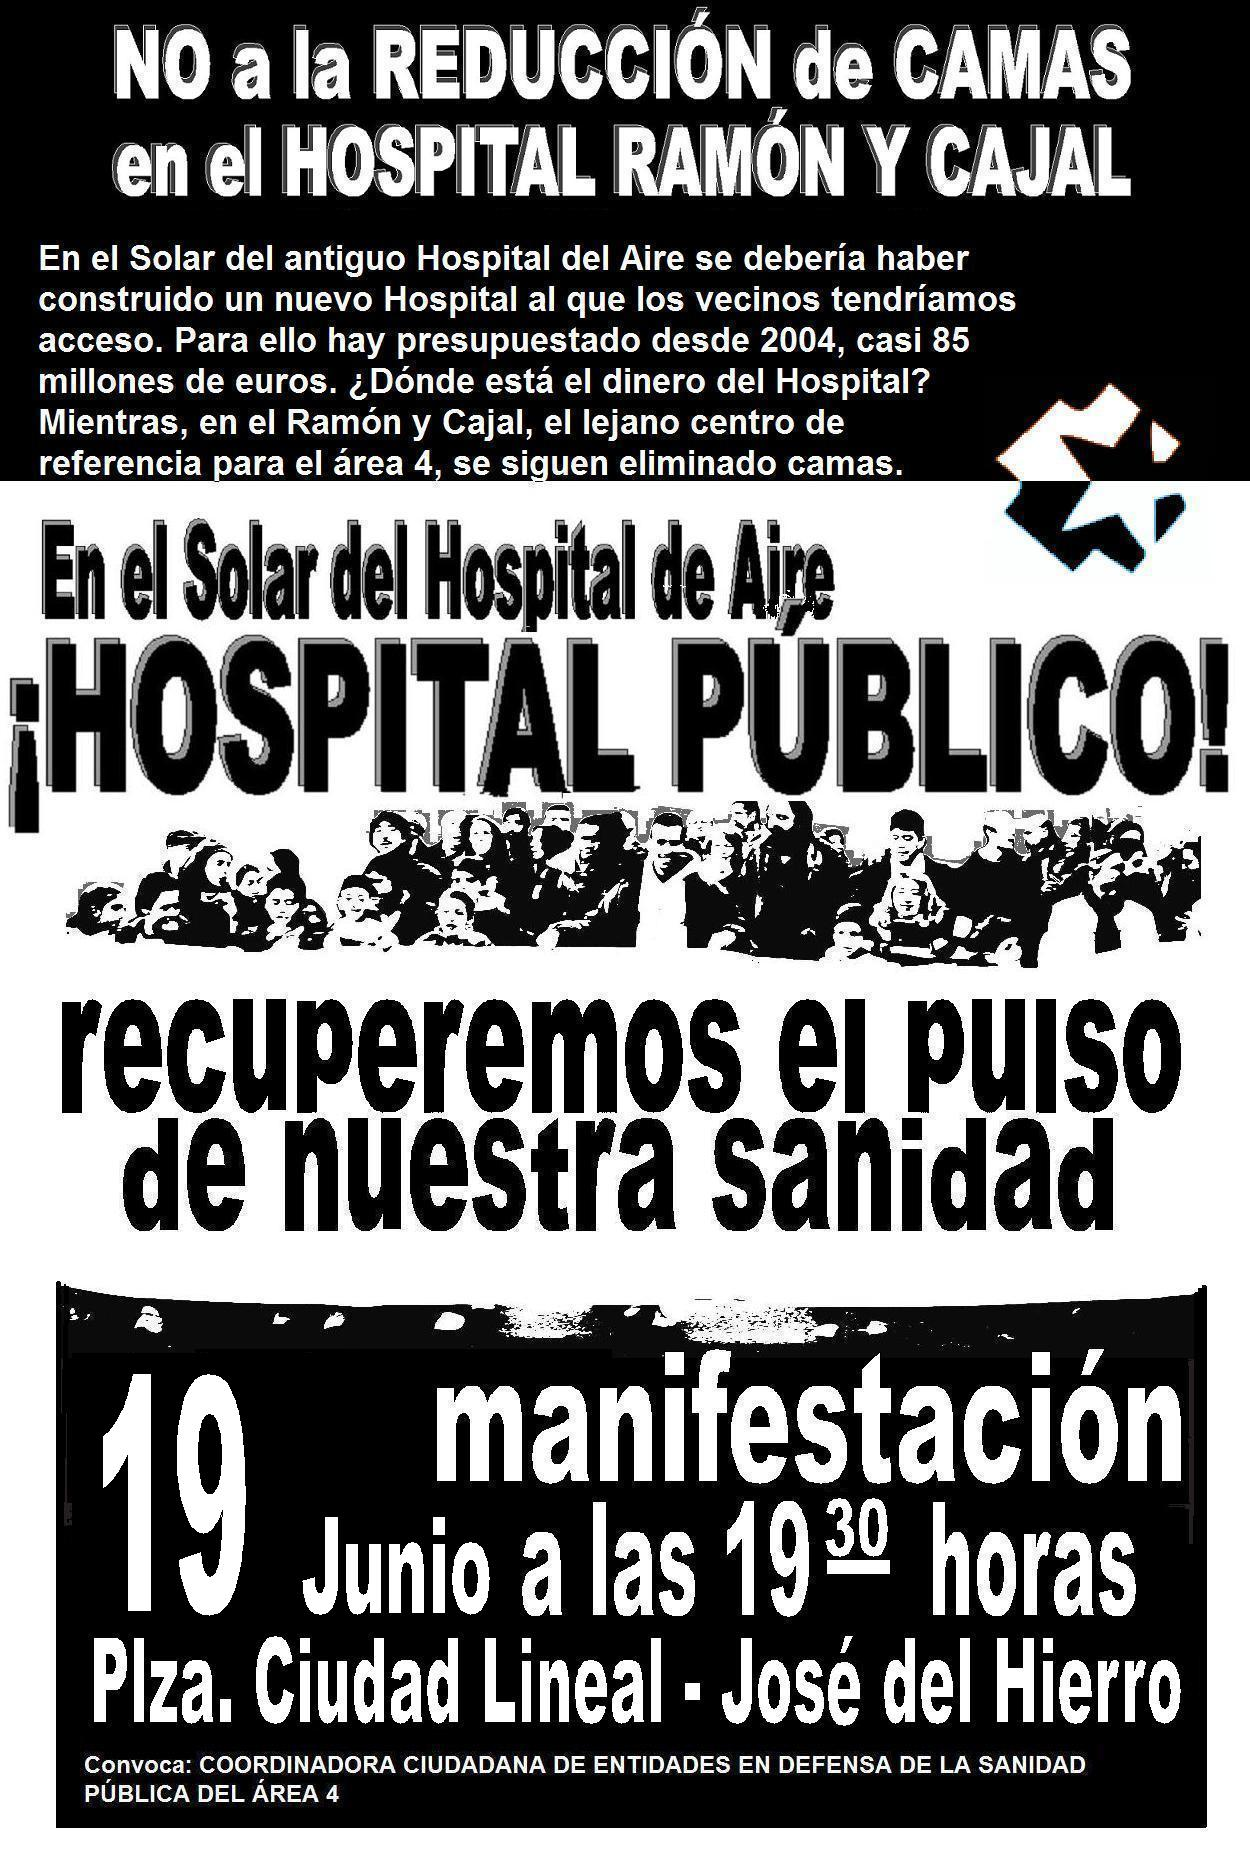 19 de Junio, jueves, a las 19,30h: Manifestacin por los terrenos del Hospital del Aire. Unidad ciudadana.